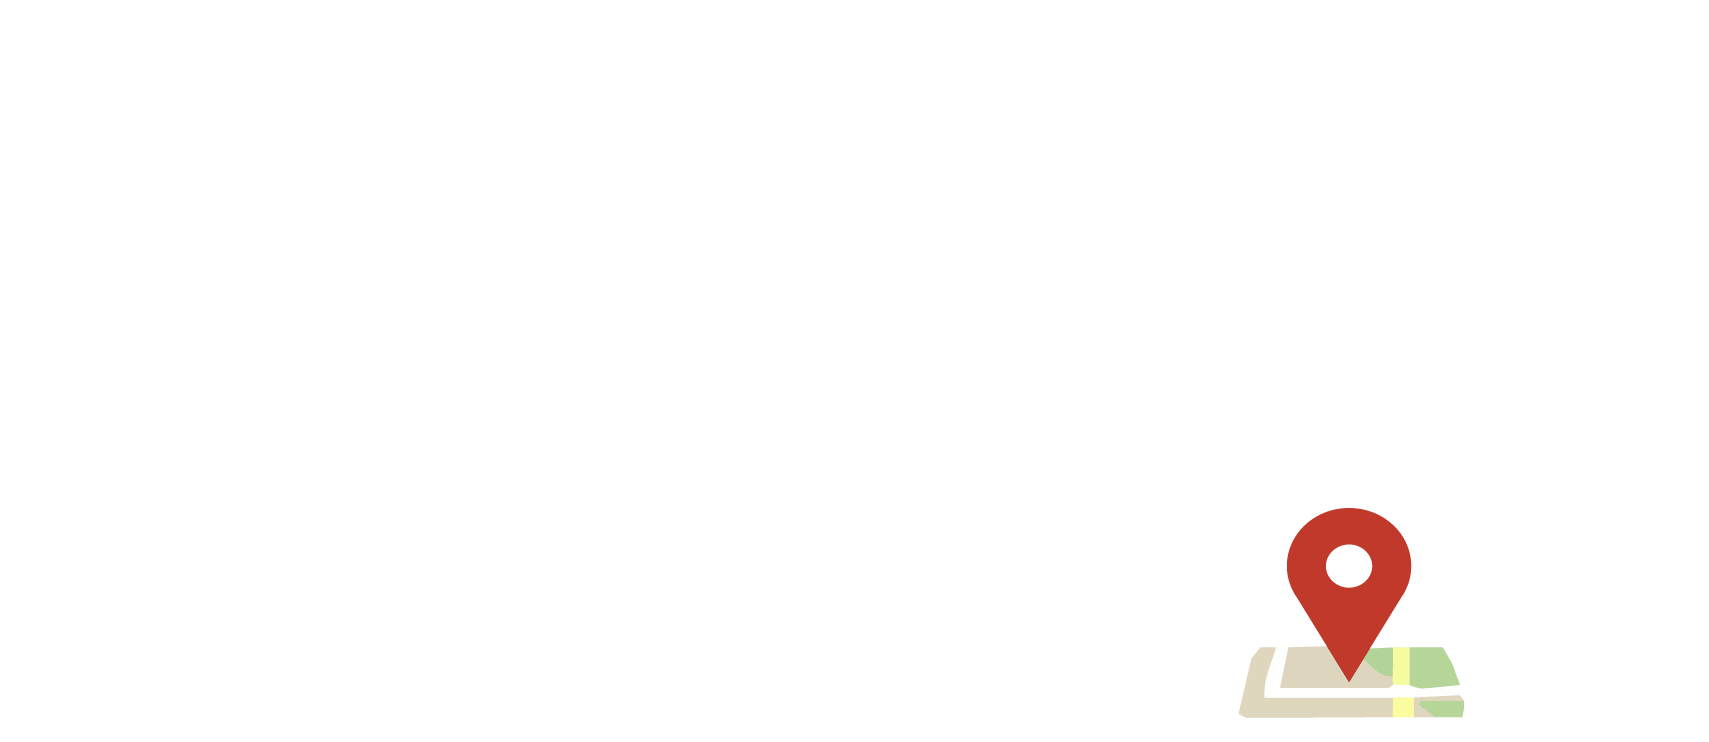 Wit logo City Tours Eindhoven